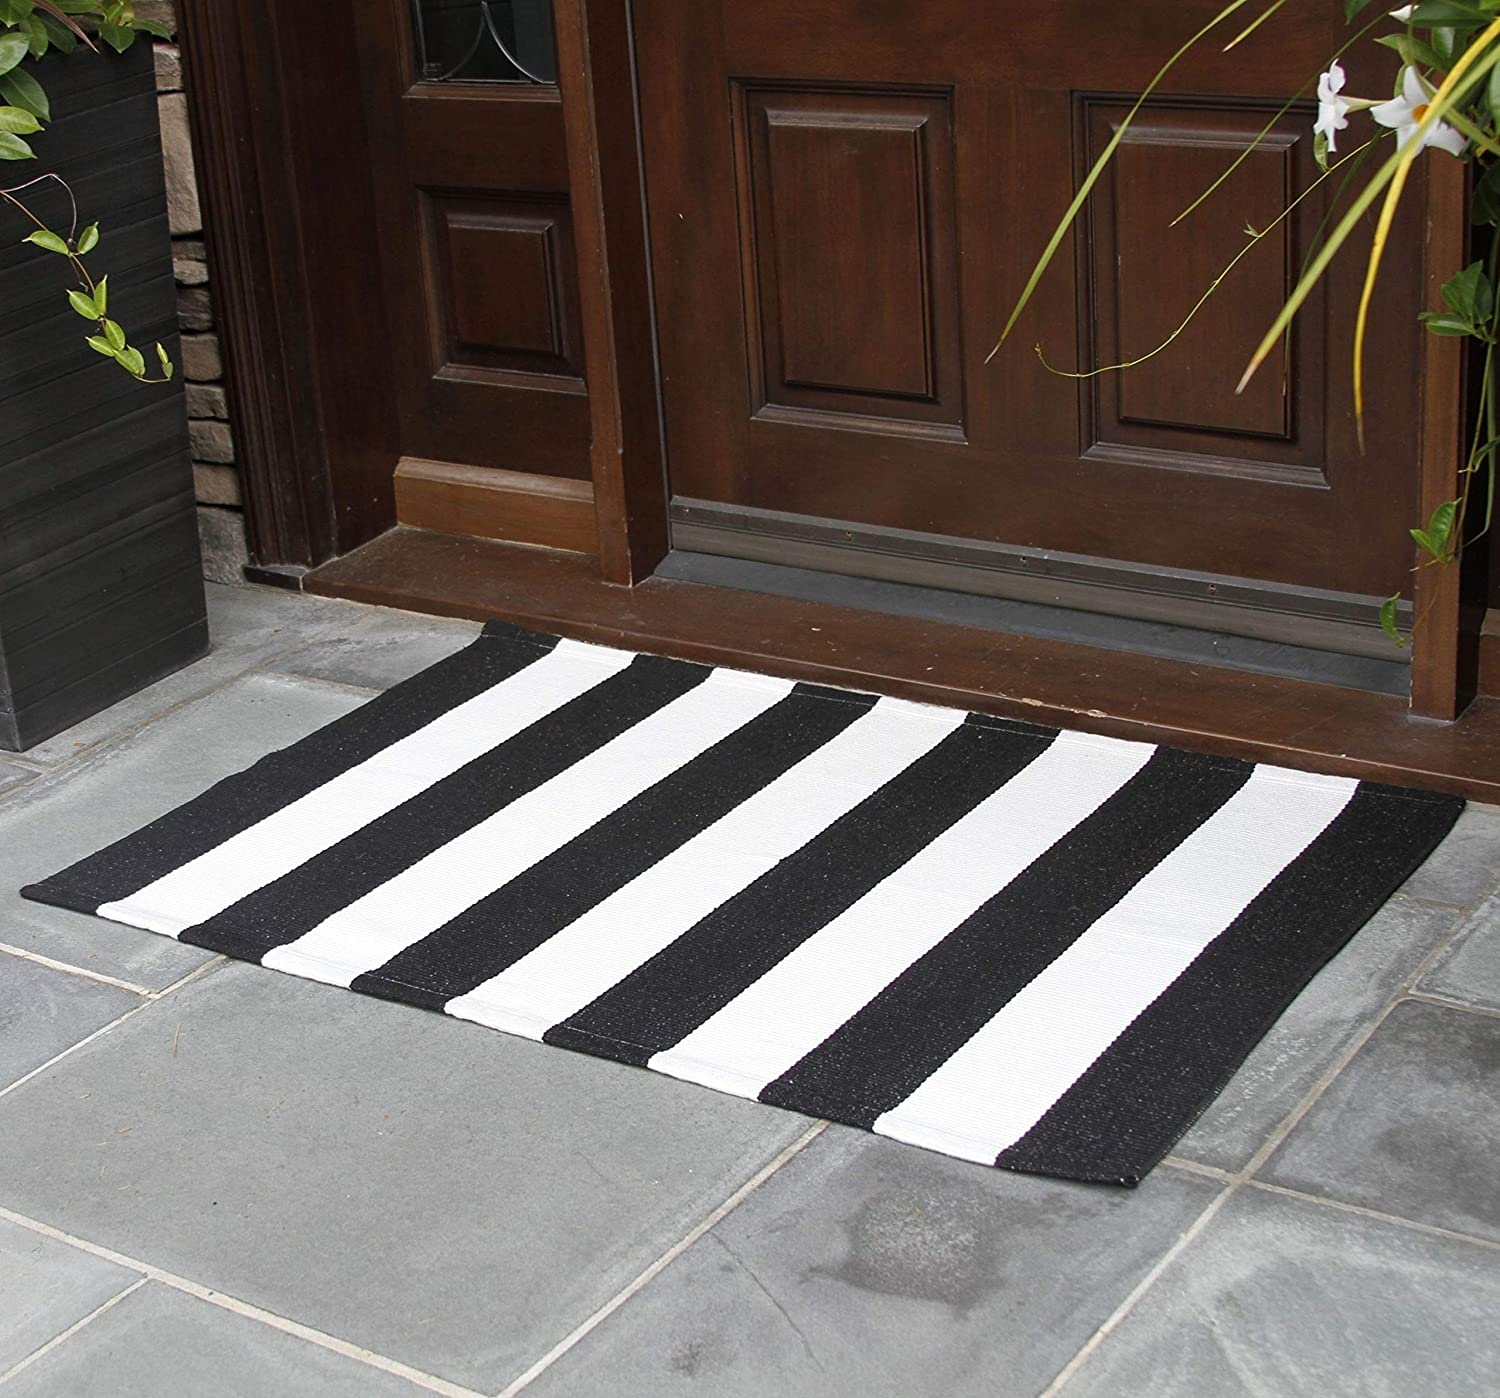 NANTA Black and White Striped Rug 27.5 x 43 Inches Cotton Woven Washable Outdoor Rugs for Farmhouse Layered Door Mats Stripe Carpet